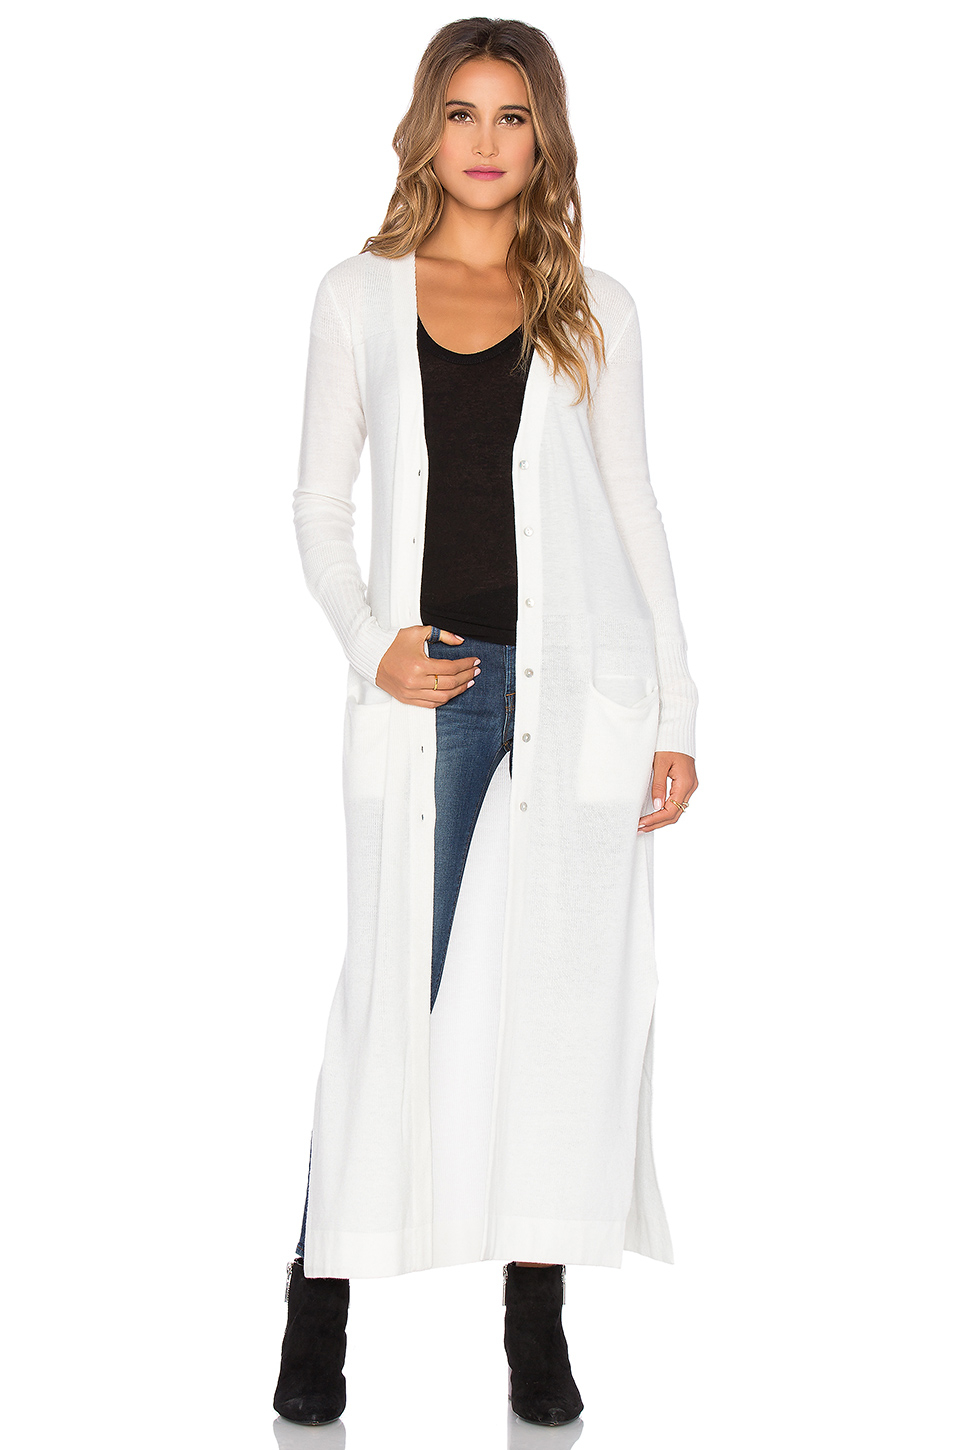 Lamade Mix Stitch Duster Cardigan in White | Lyst